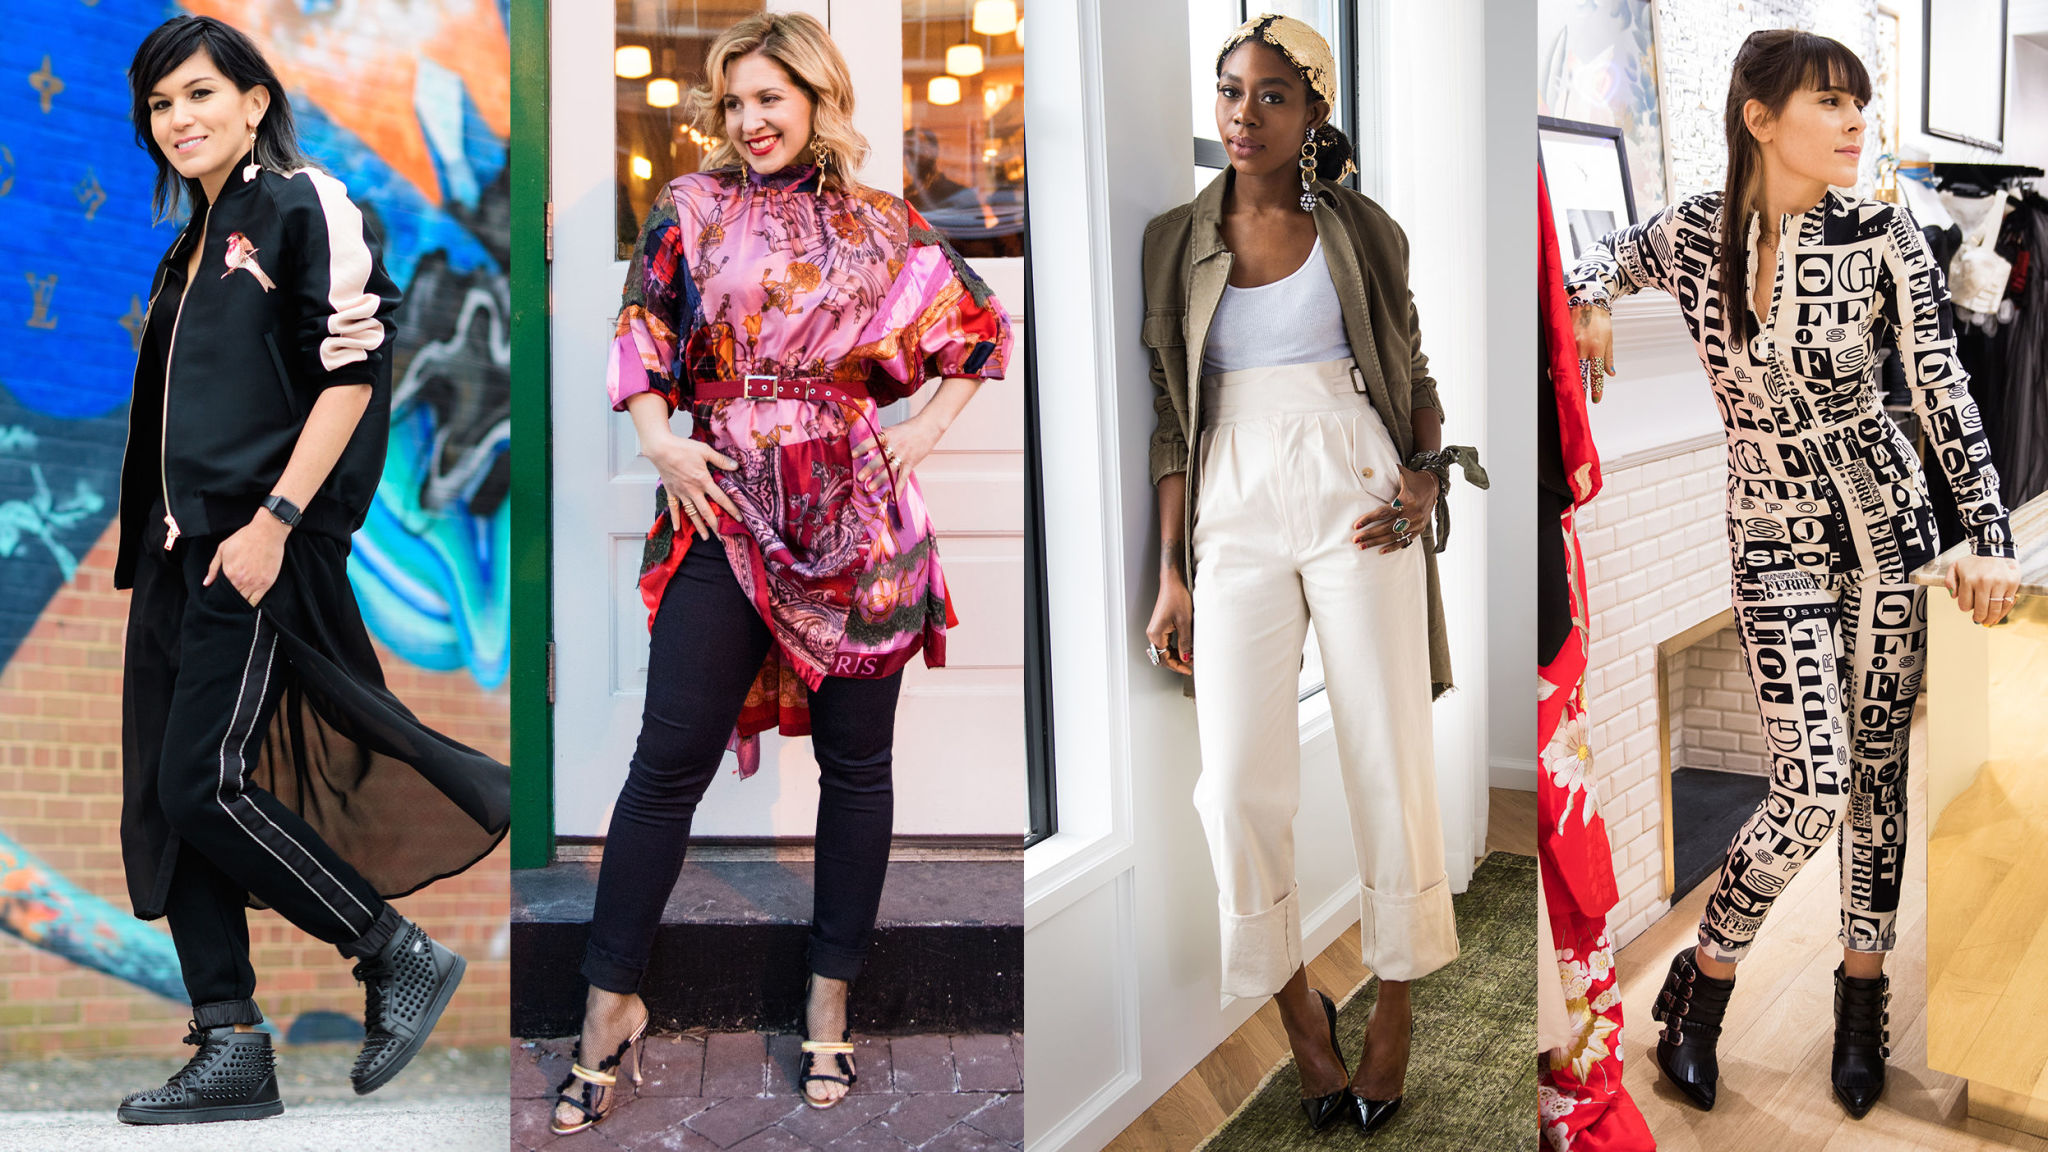 New modern dress styles - Personal Style